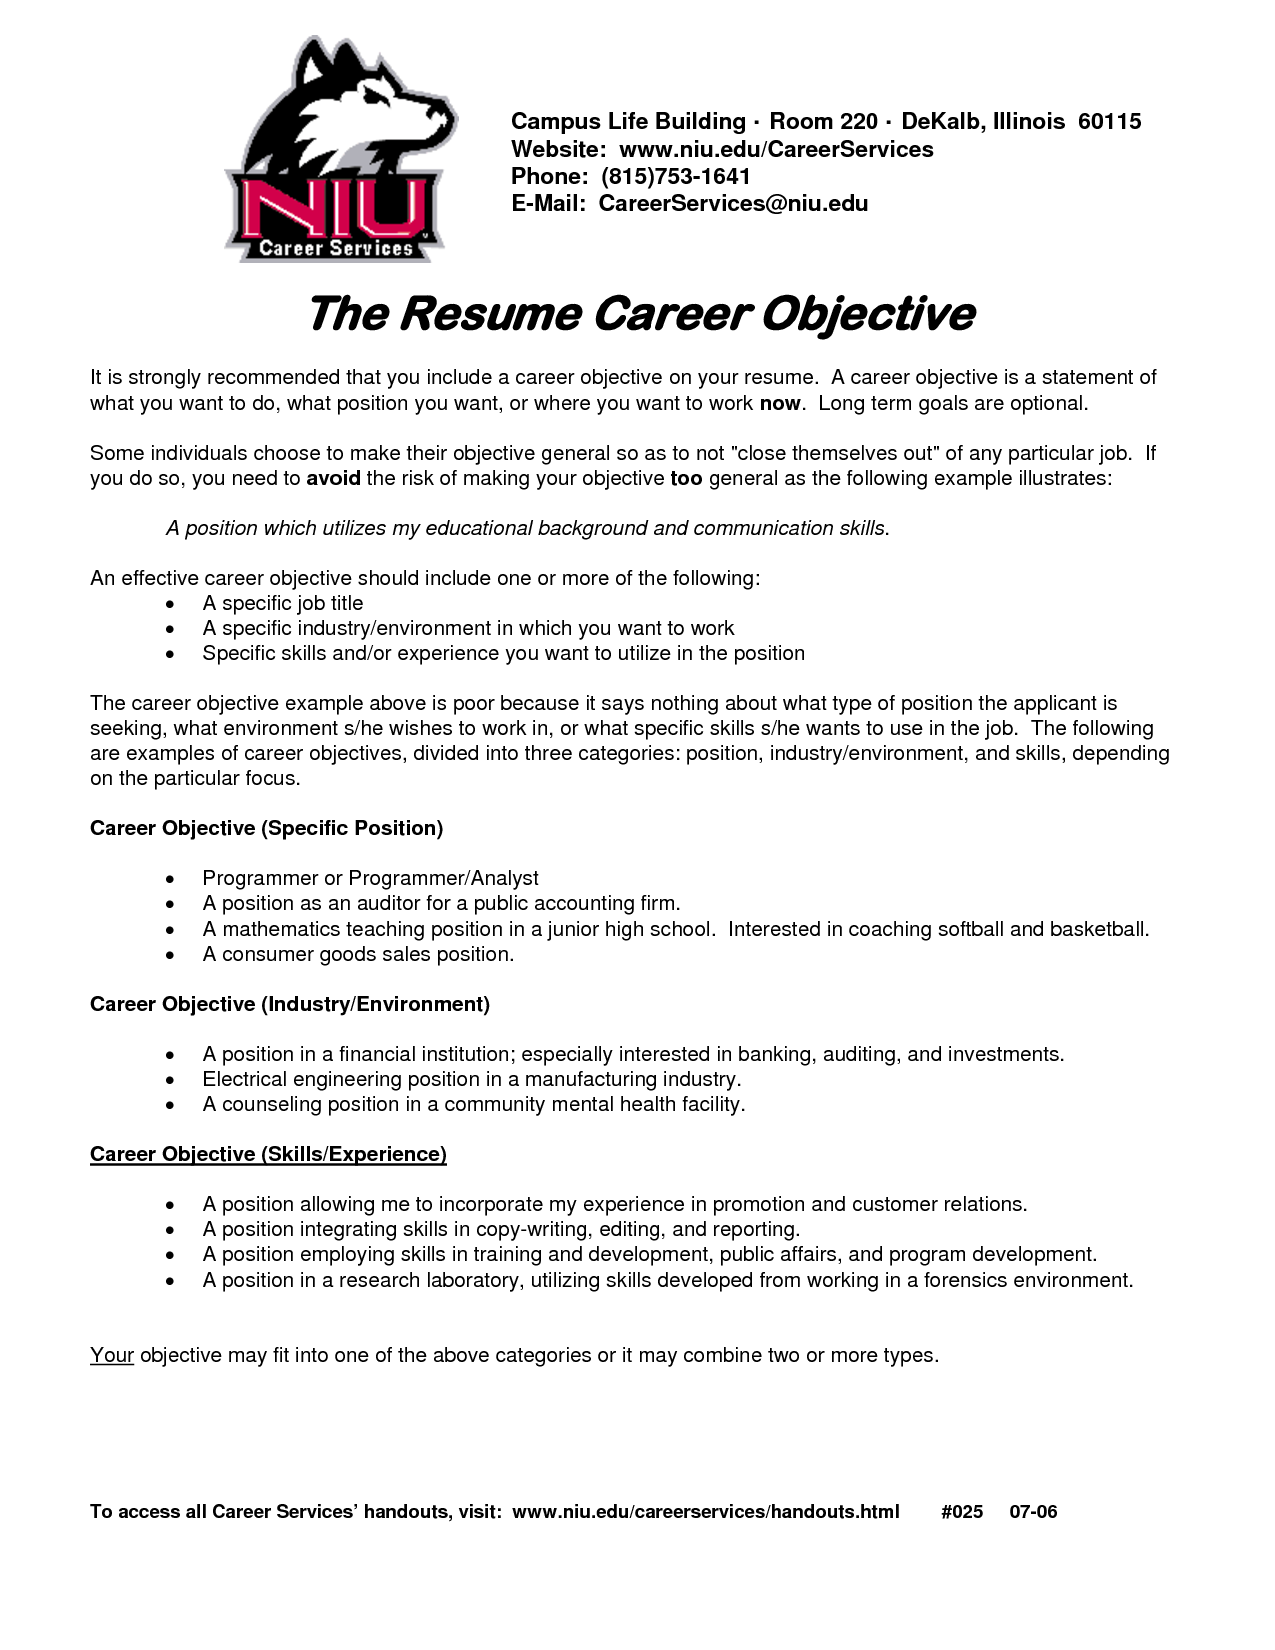 resume templates job objective #objective #resume #resumetemplates